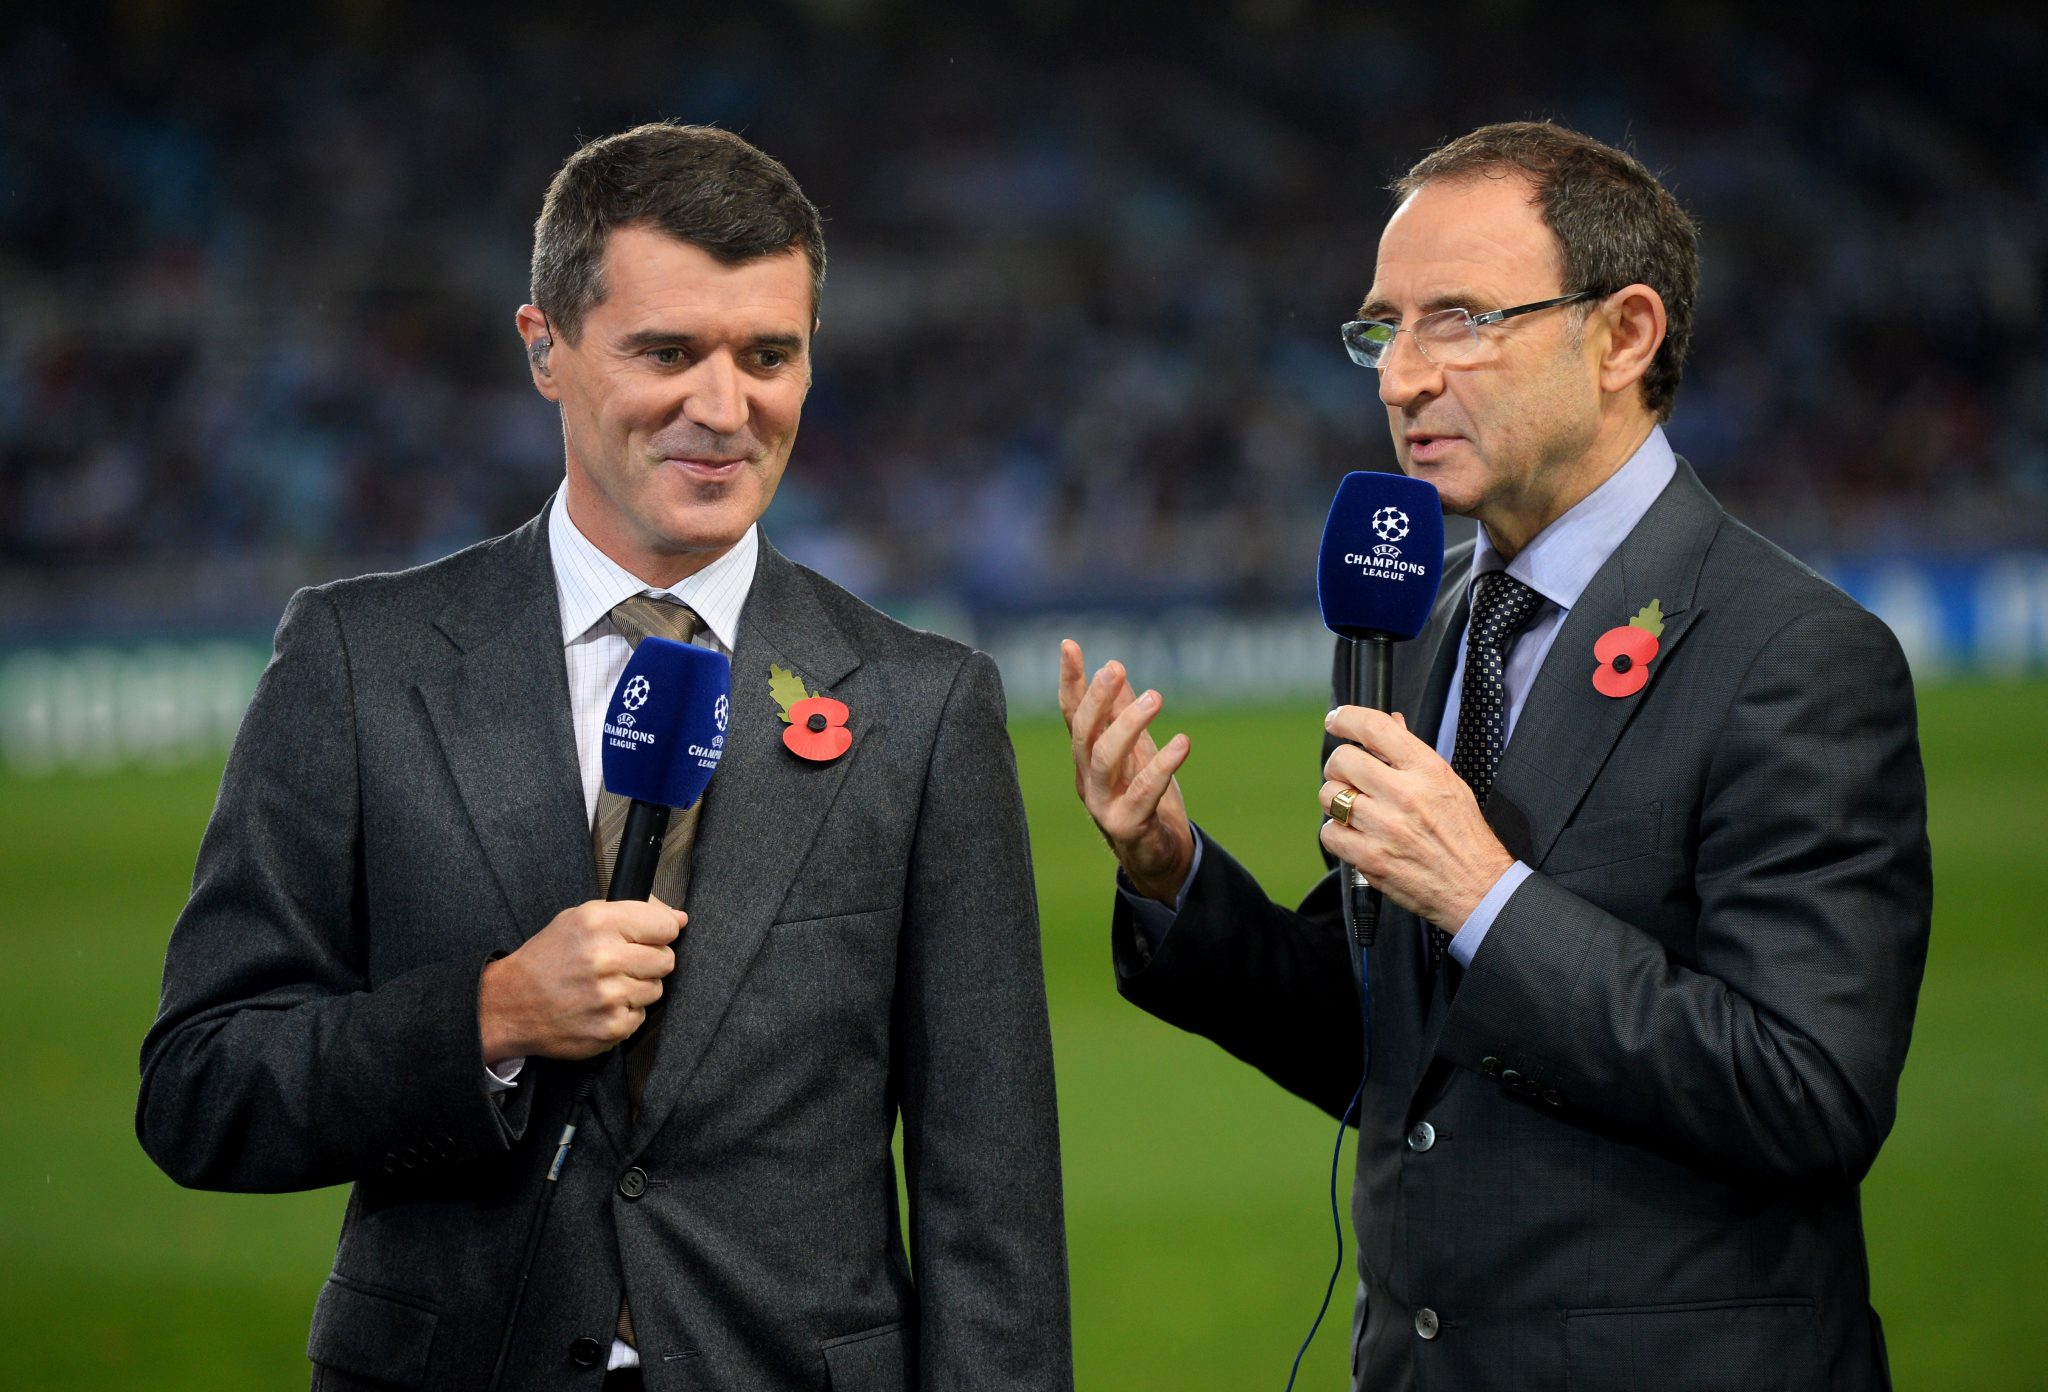 Roy Keane is wasted working as Martin O'Neill's assistant